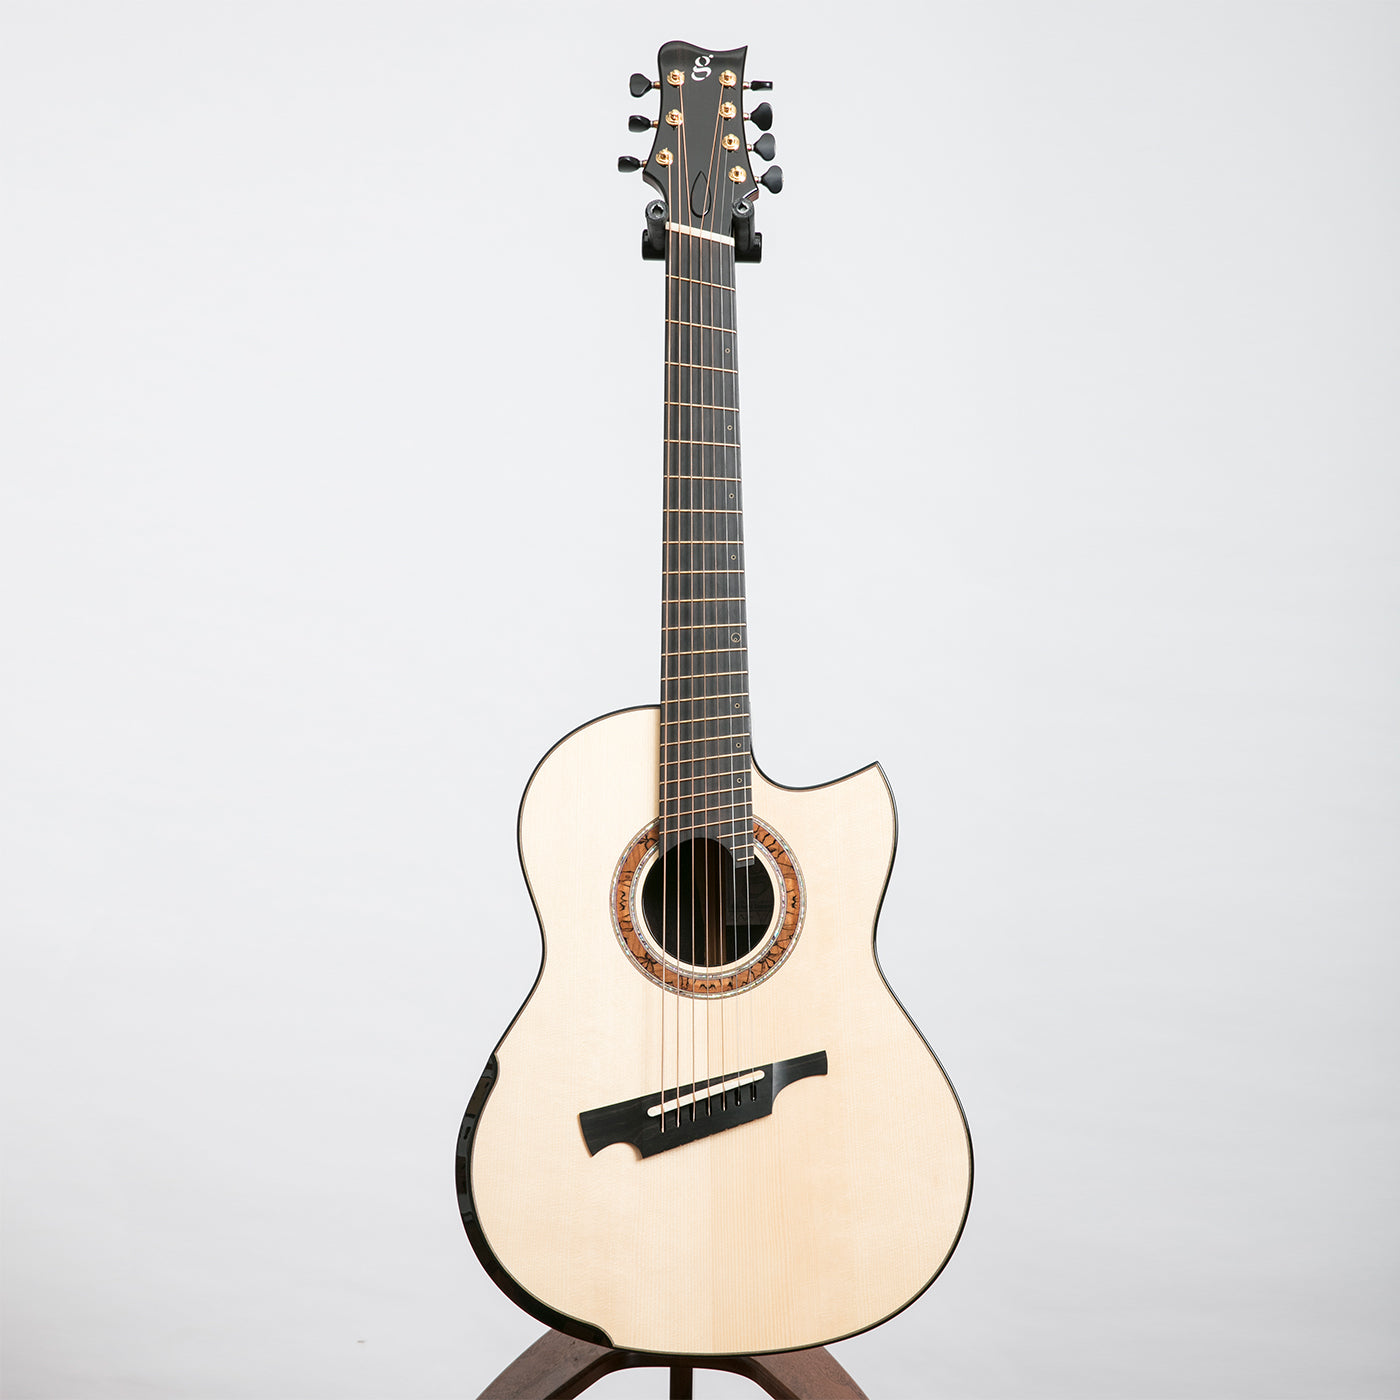 greenfield g1 2 7 string acoustic guitar ziricote adirondack spruce the north american guitar. Black Bedroom Furniture Sets. Home Design Ideas